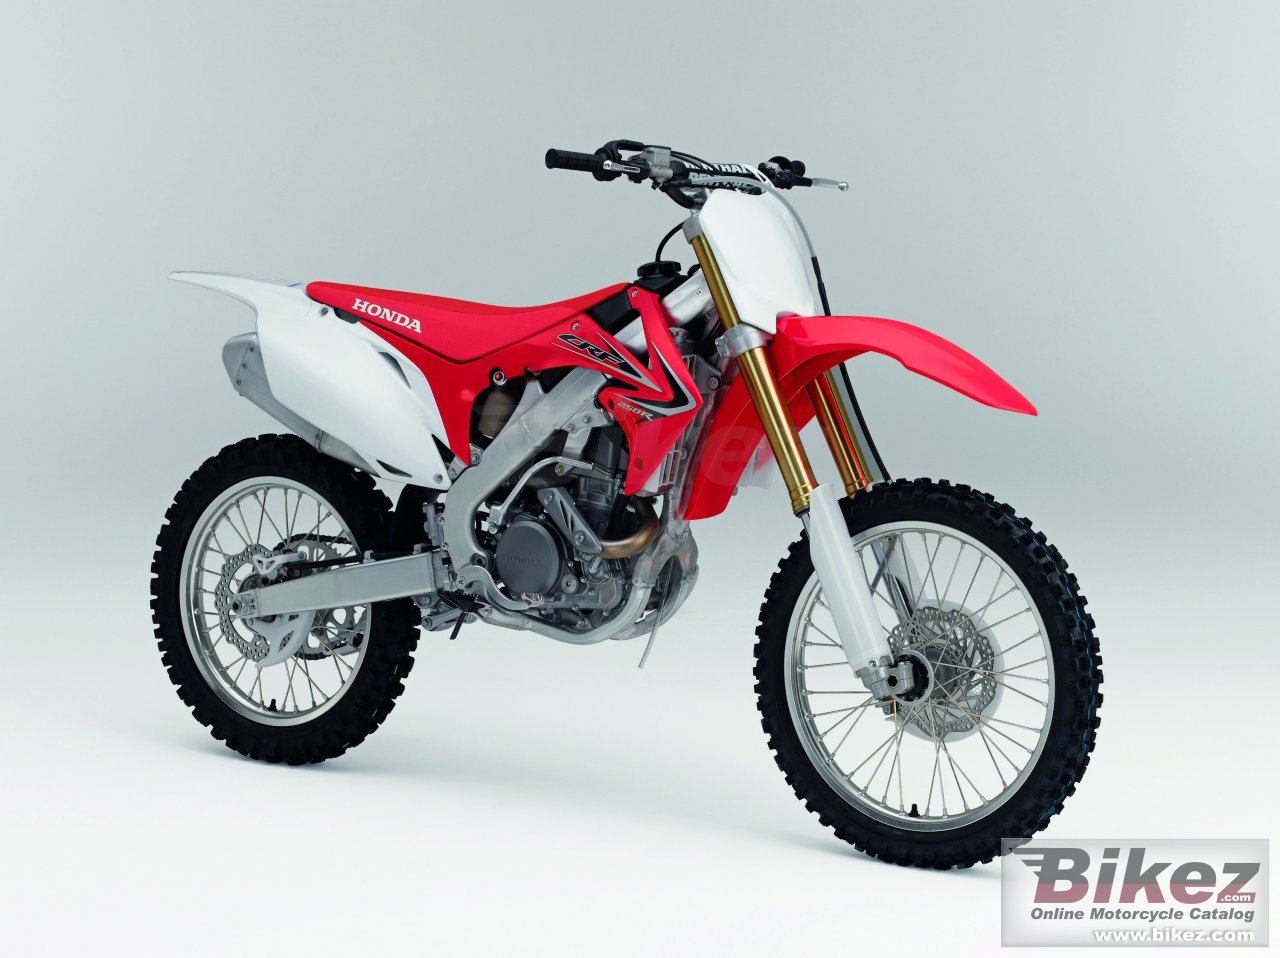 Big Honda crf250r picture and wallpaper from Bikez.com